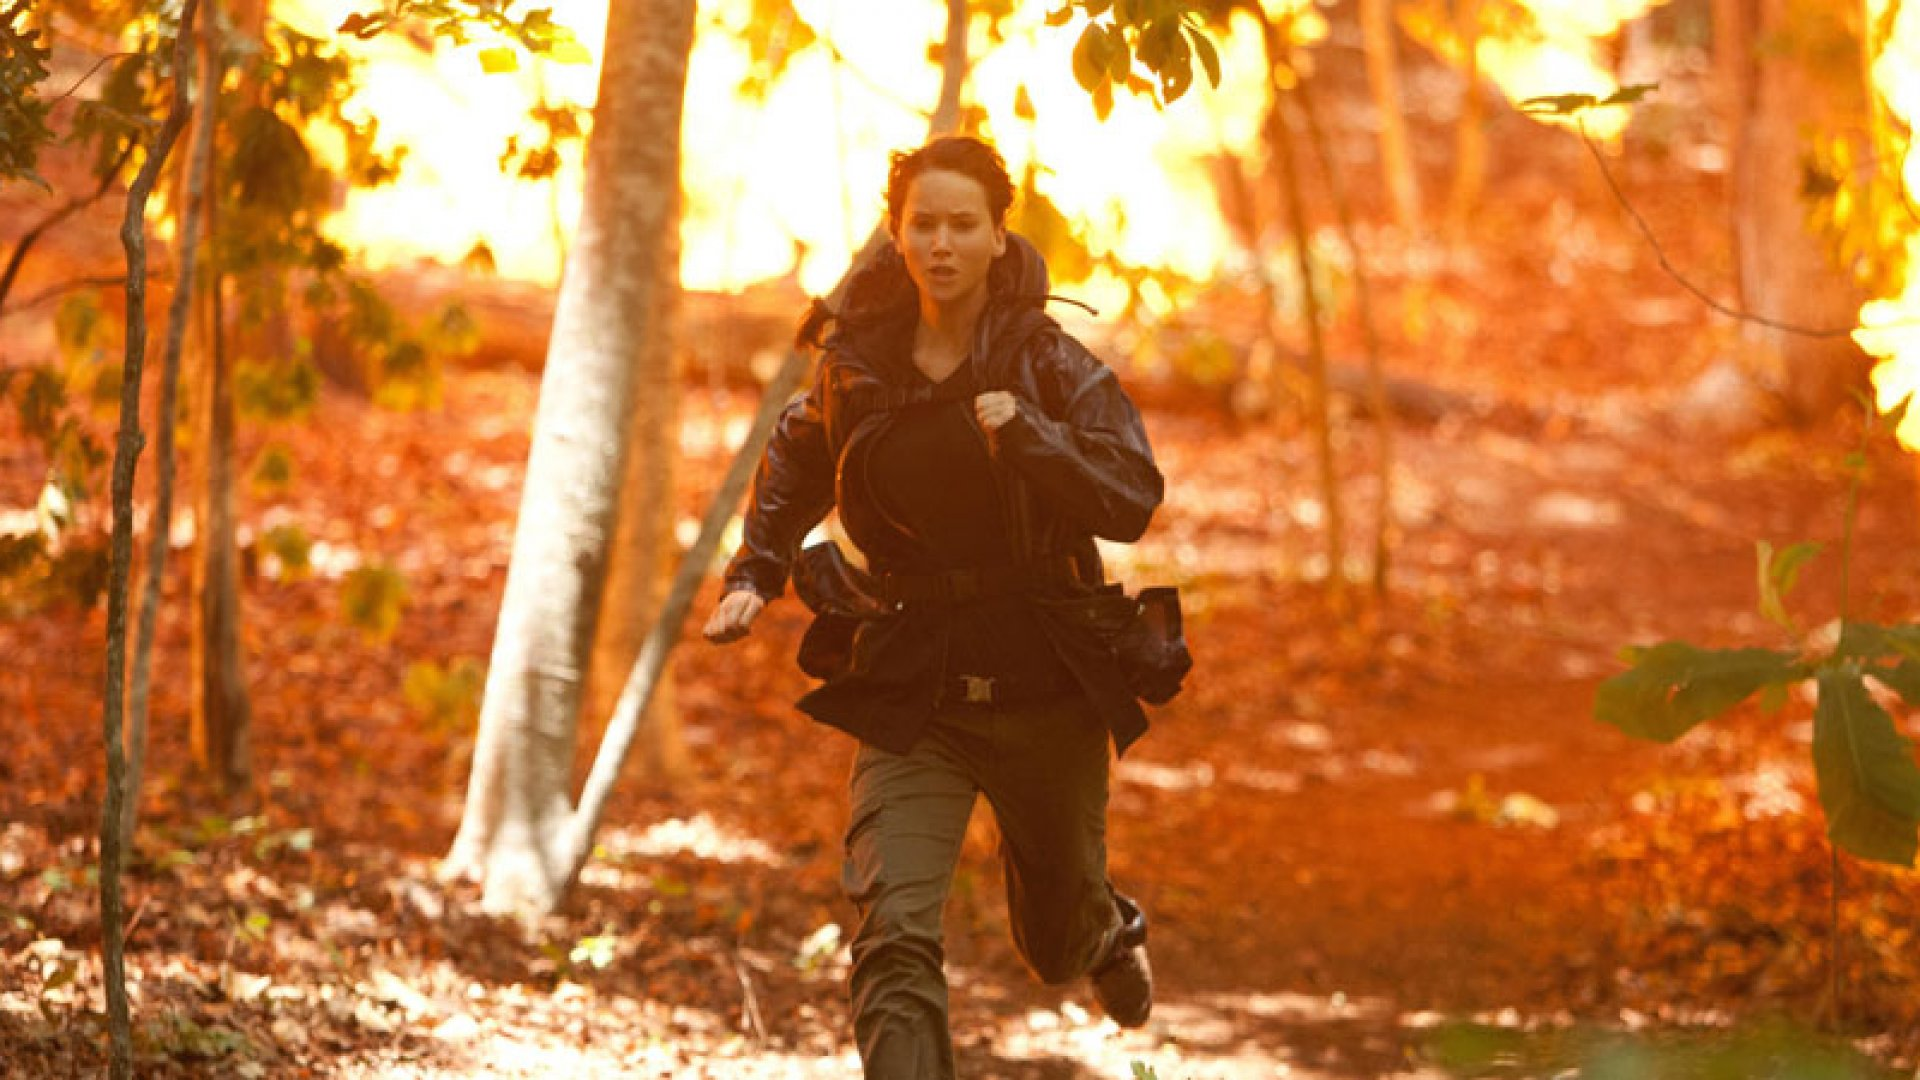 Holiday Bonuses: Don't Make It Feel Like 'The Hunger Games'